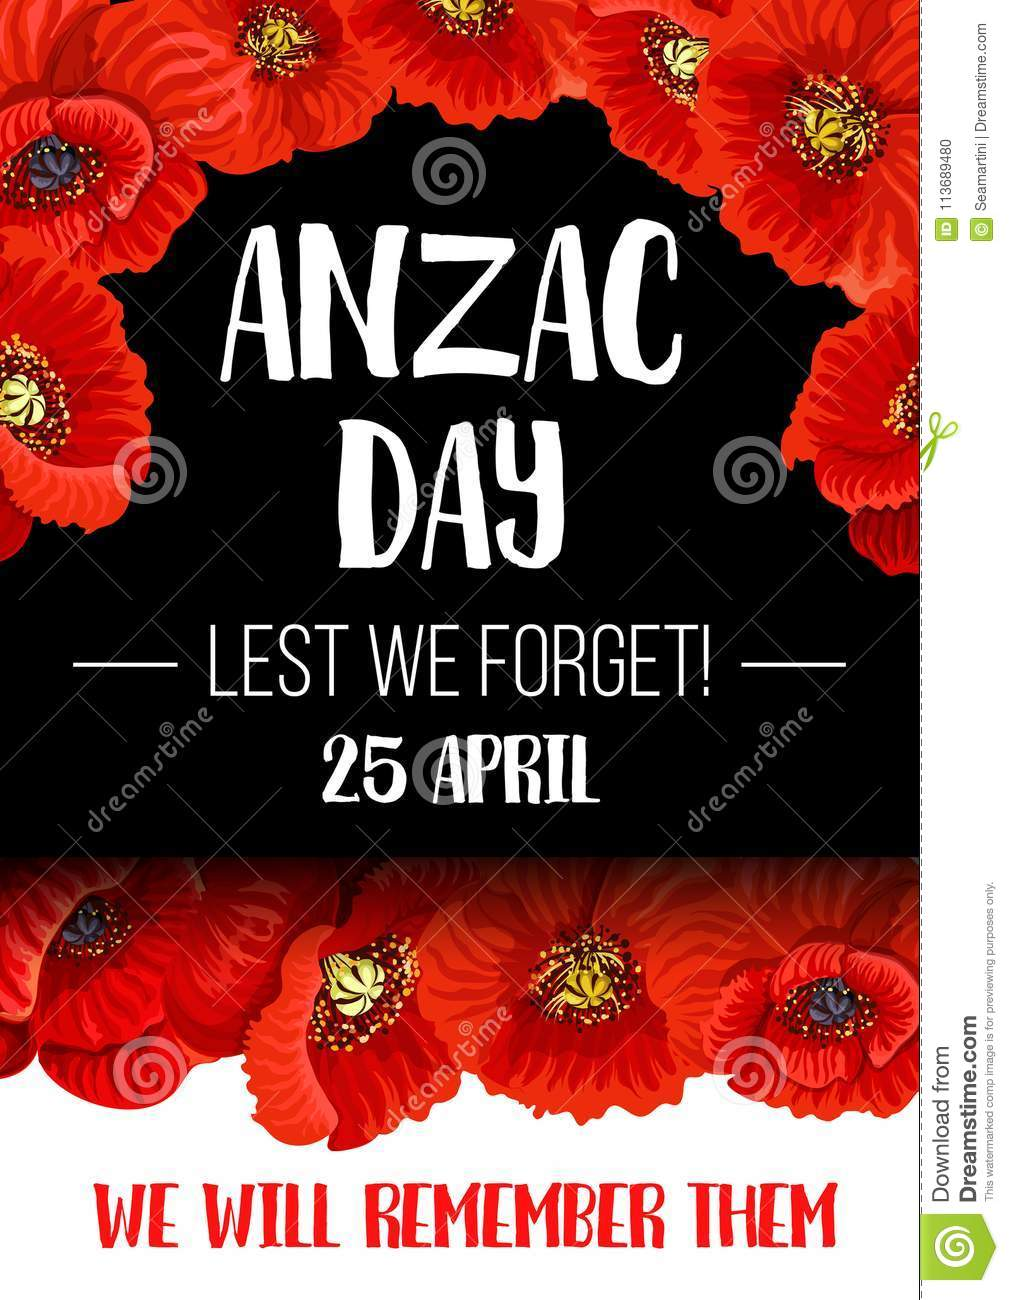 Anzac Remembrance Day Red Poppy Flower Banner Stock Vector